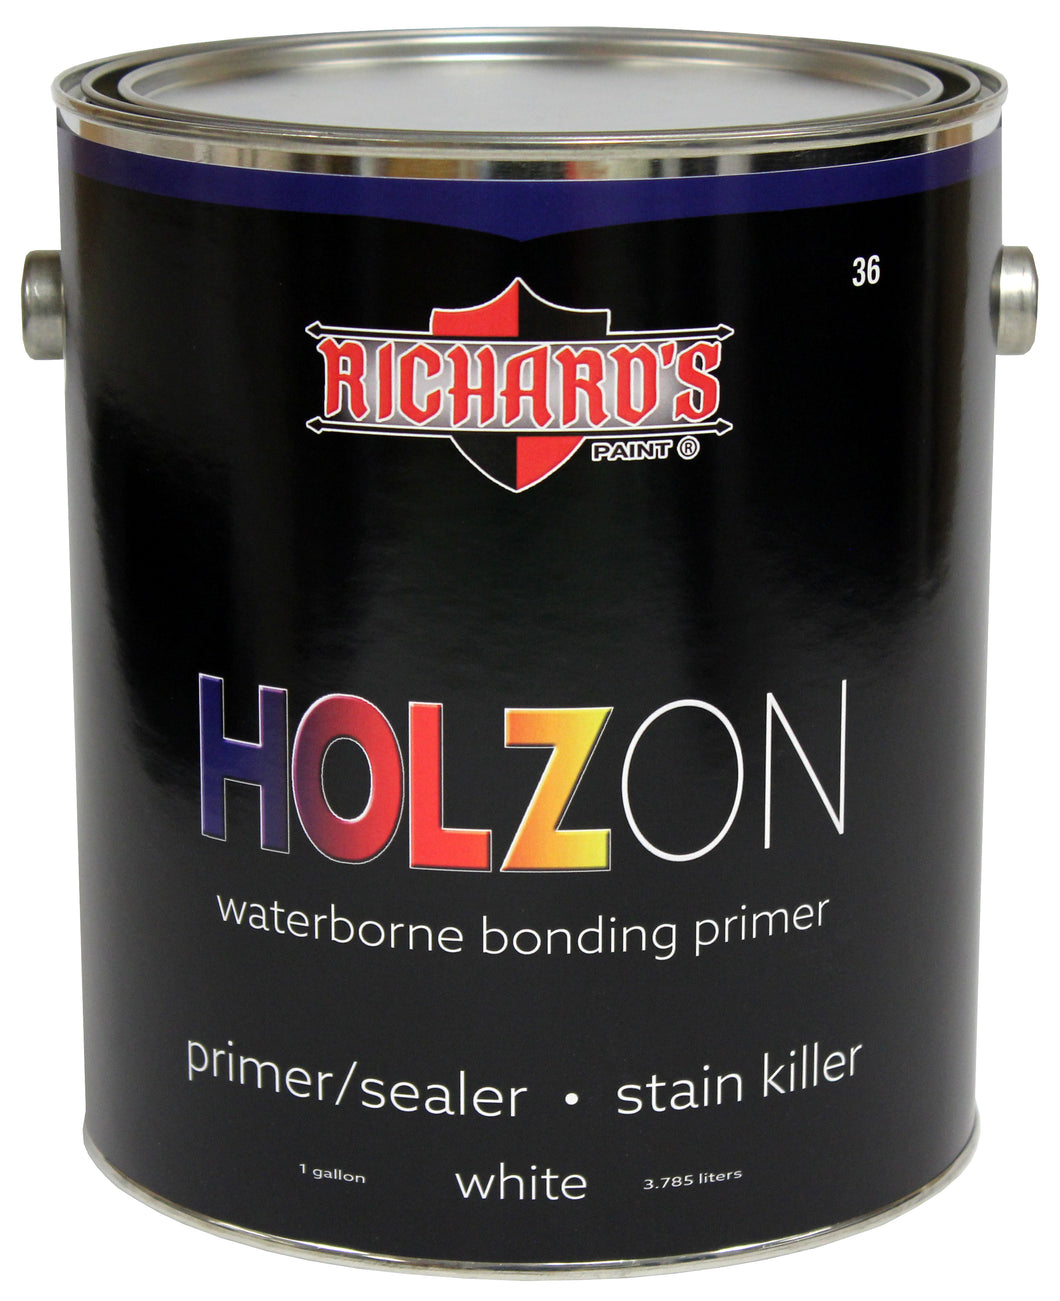 Richard's #36 HolzON Waterborne Bonding Primer